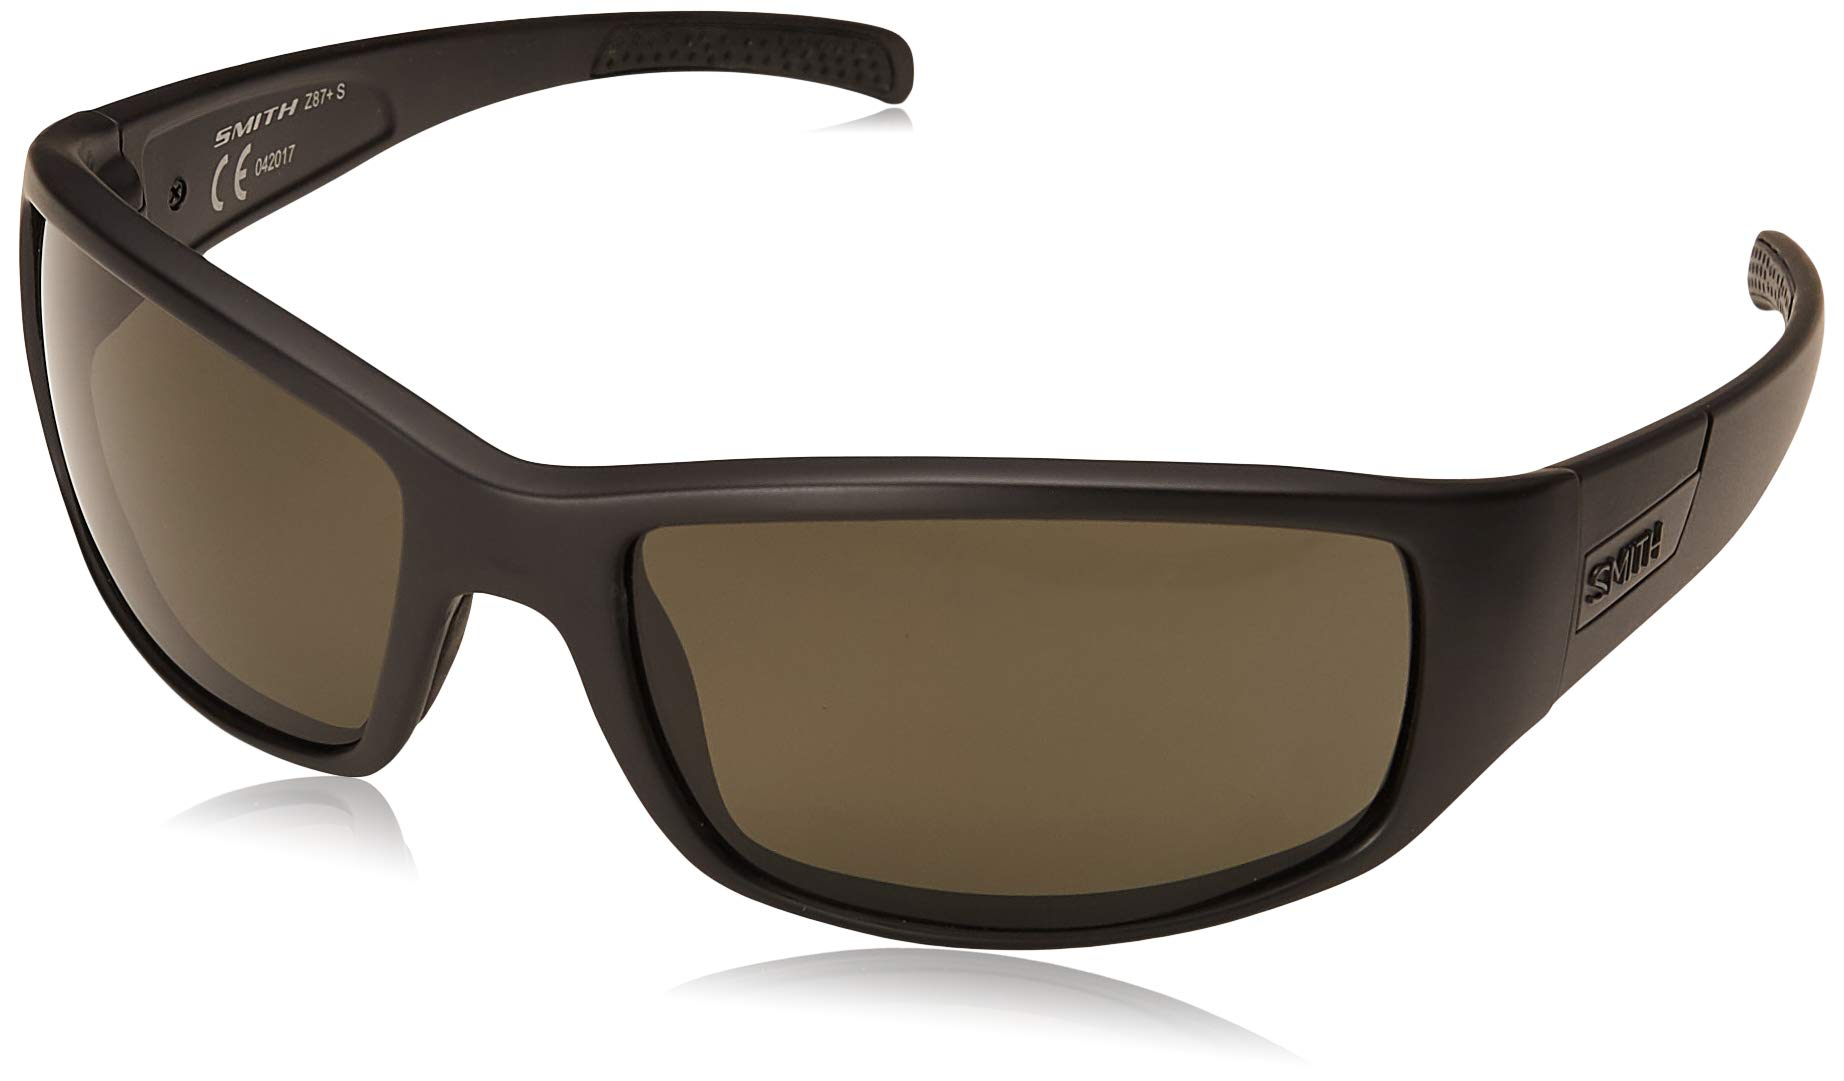 Smith Optics Elite Prospect Tactical Sunglass, Polarized Gray, Black by Smith Optics